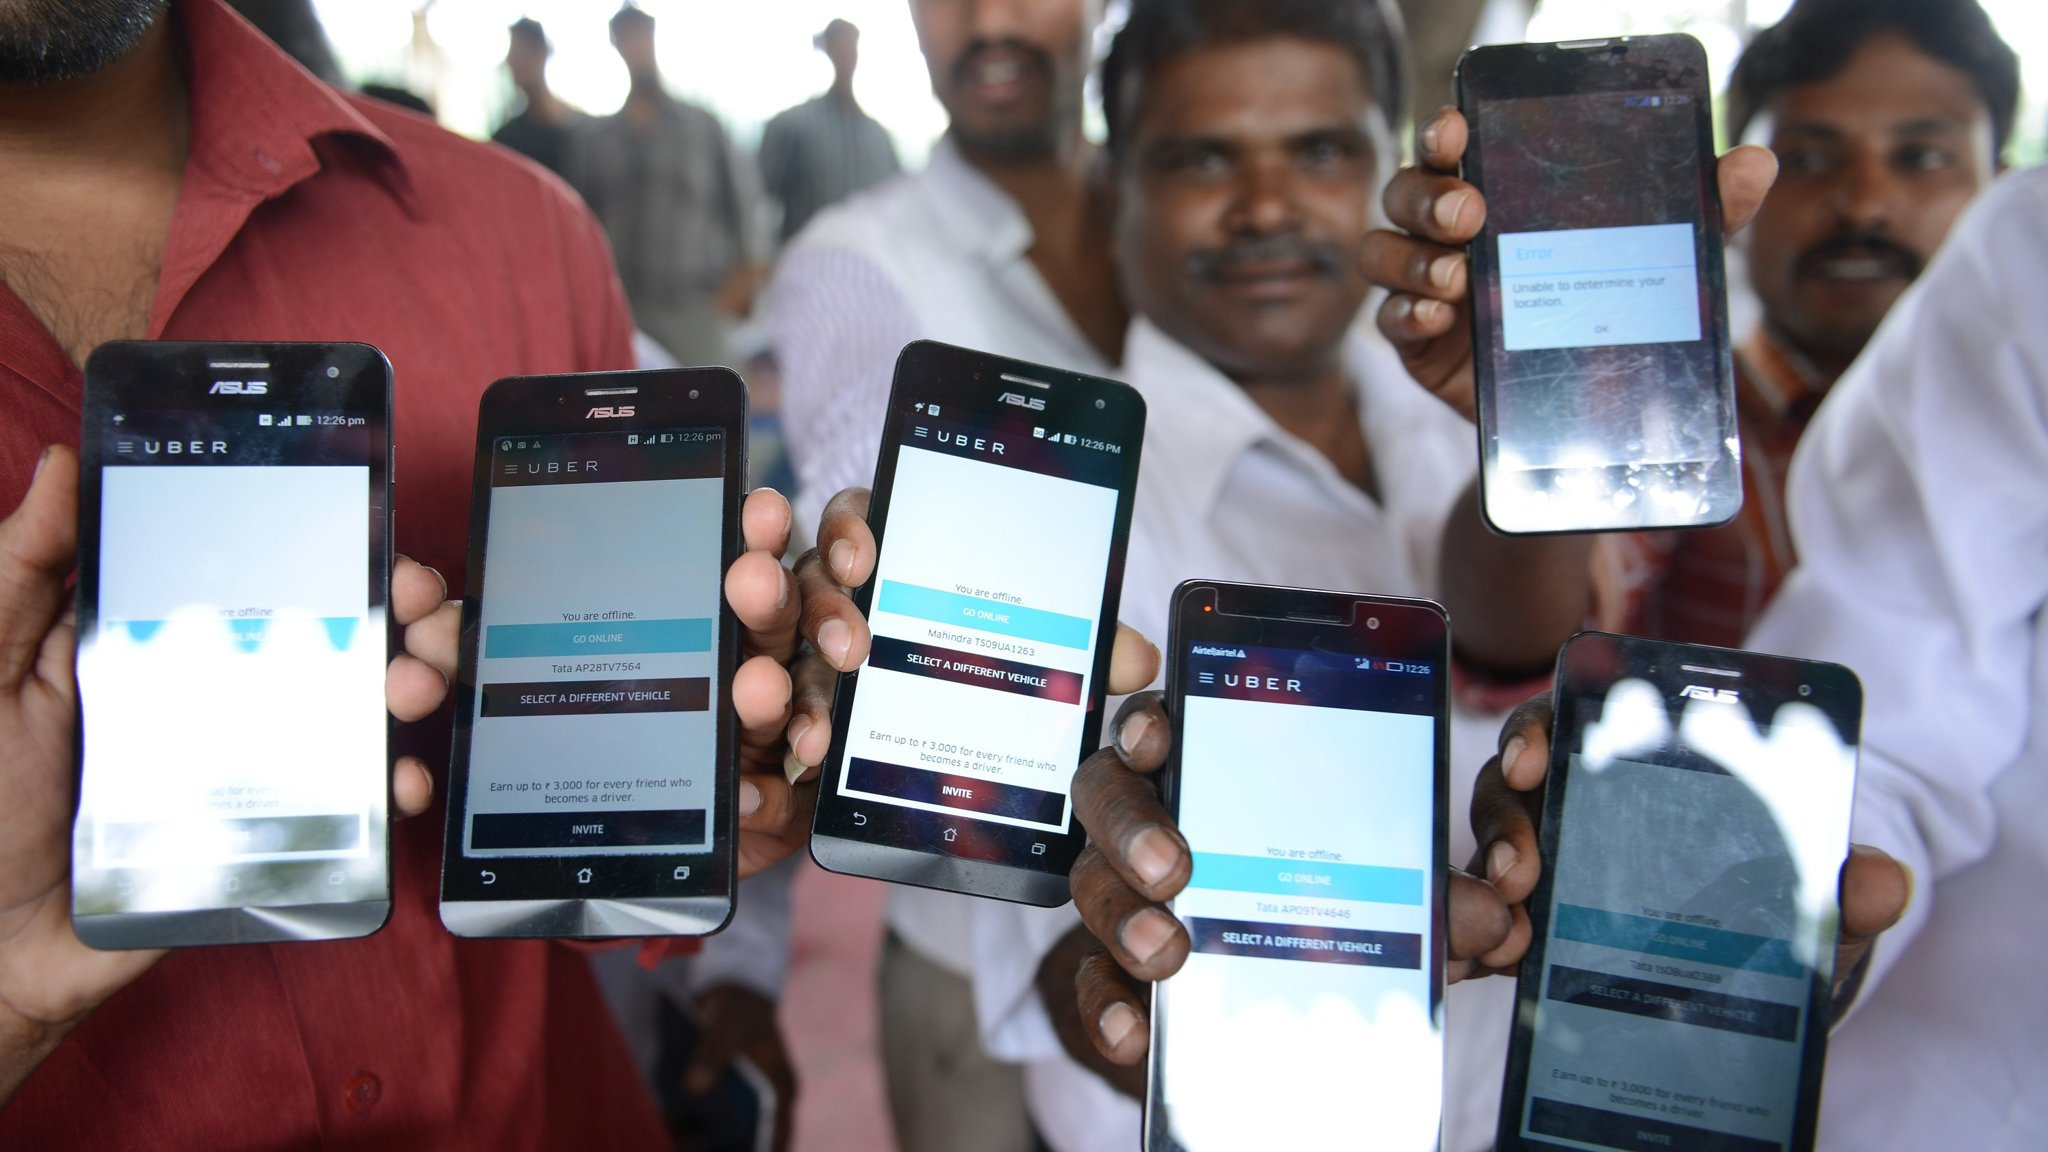 Uber and Ola hit by new taxi app regulations in India | Financial Times